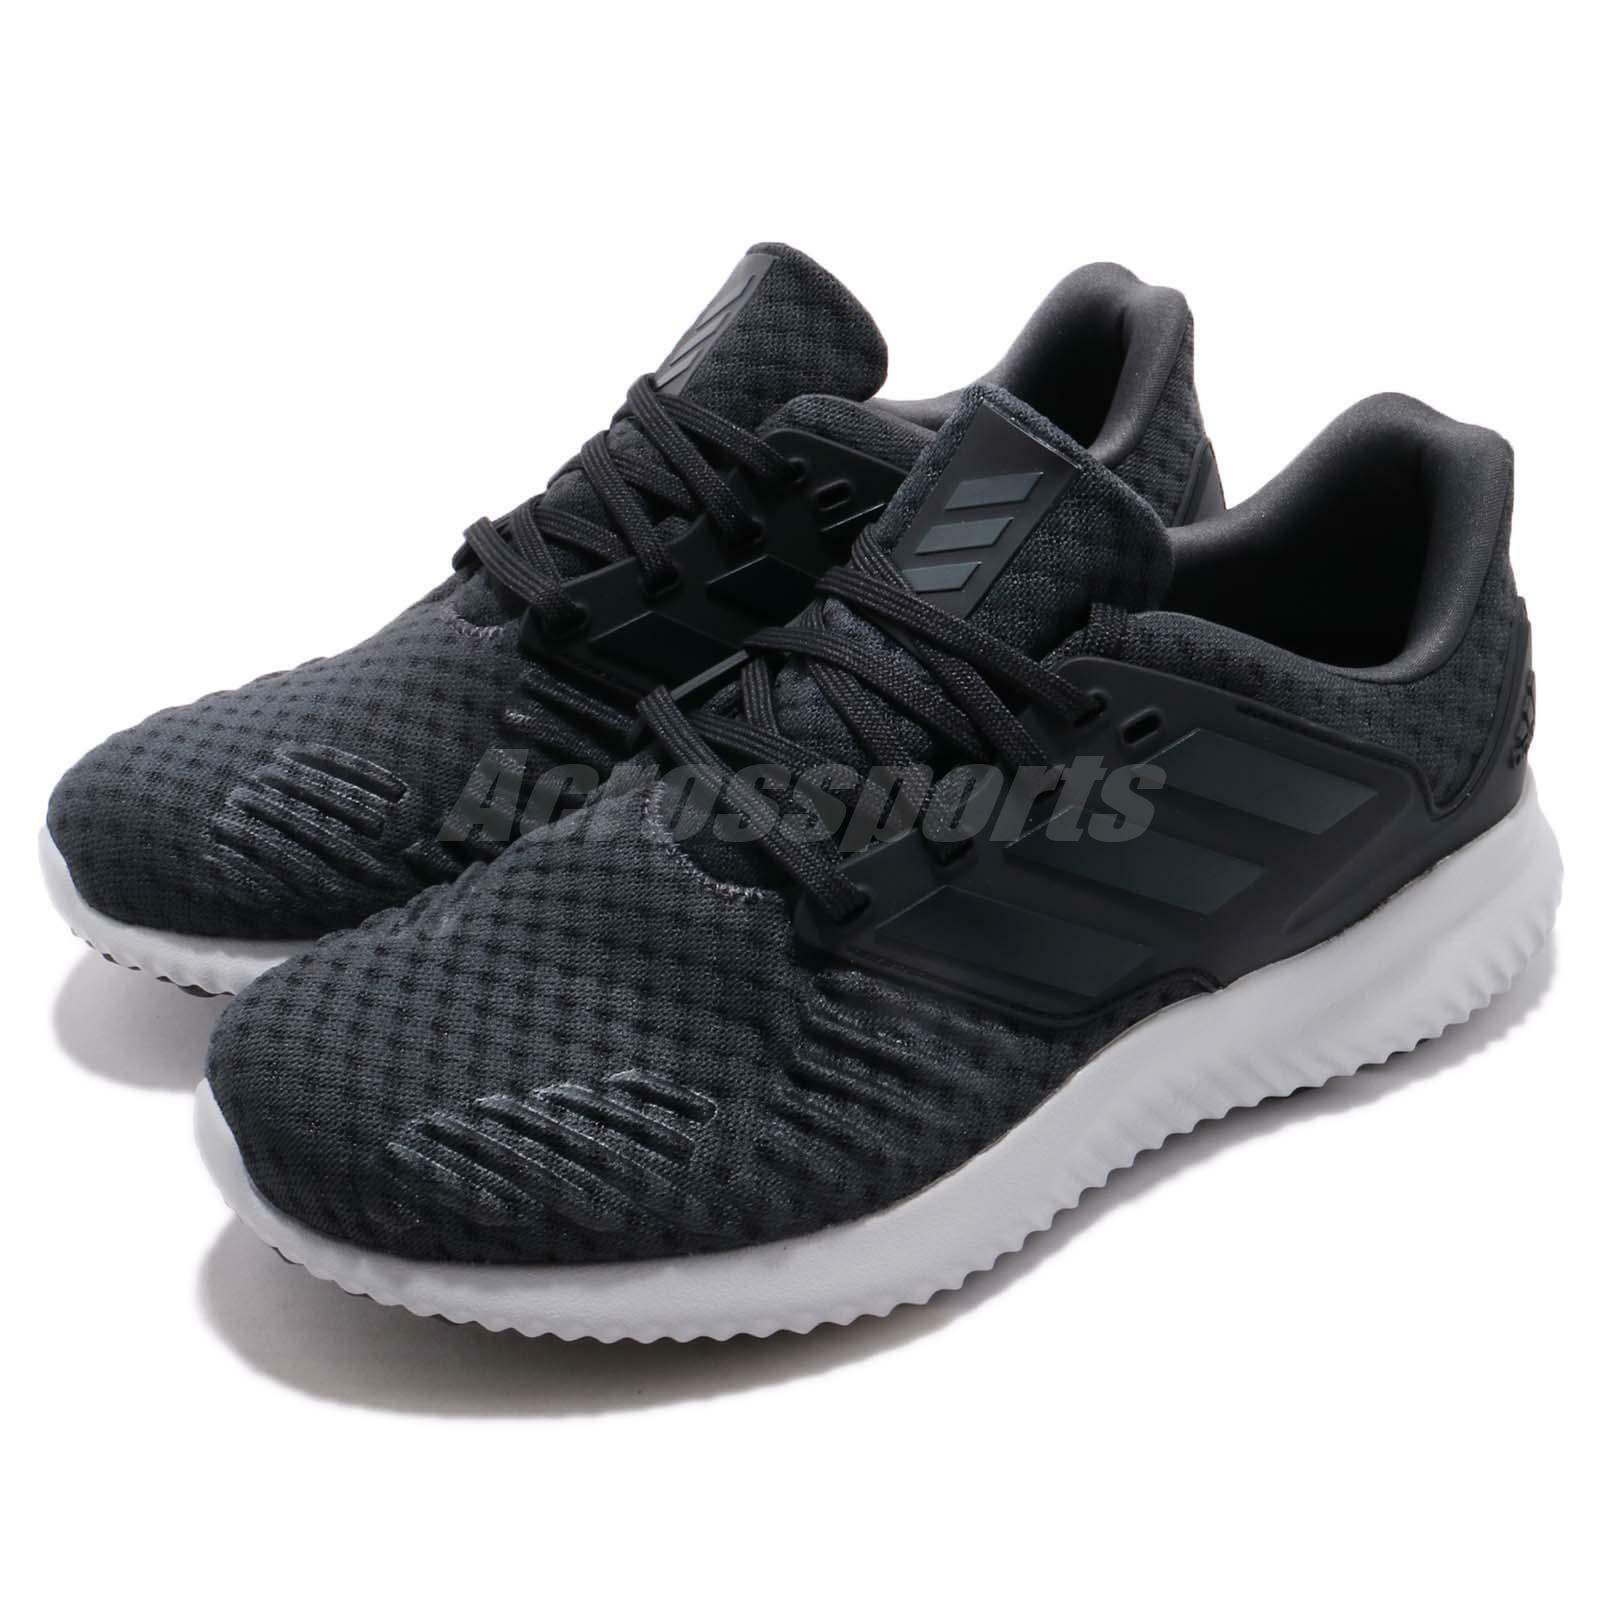 Adidas Alphabounce RC 2 M Carbon Black Men Running Training shoes Sneaker AQ0552